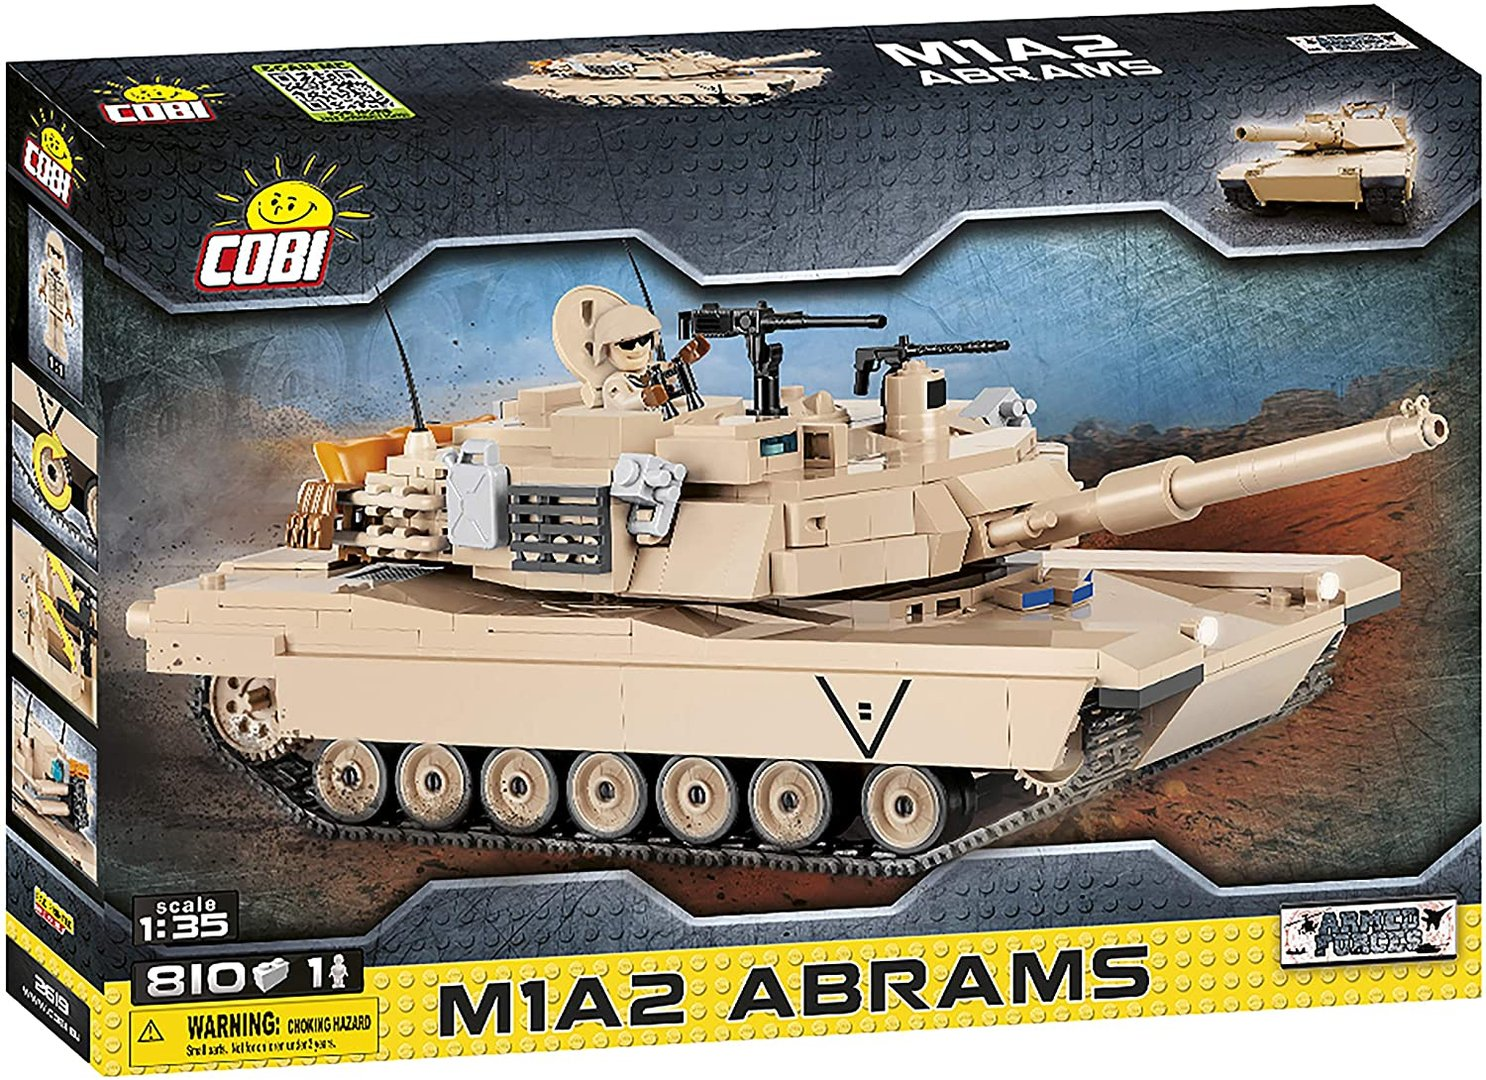 Cobi 2619 Tank M1A2 Abrams (Armed Forces) Pad printed - no Stickers Panzer